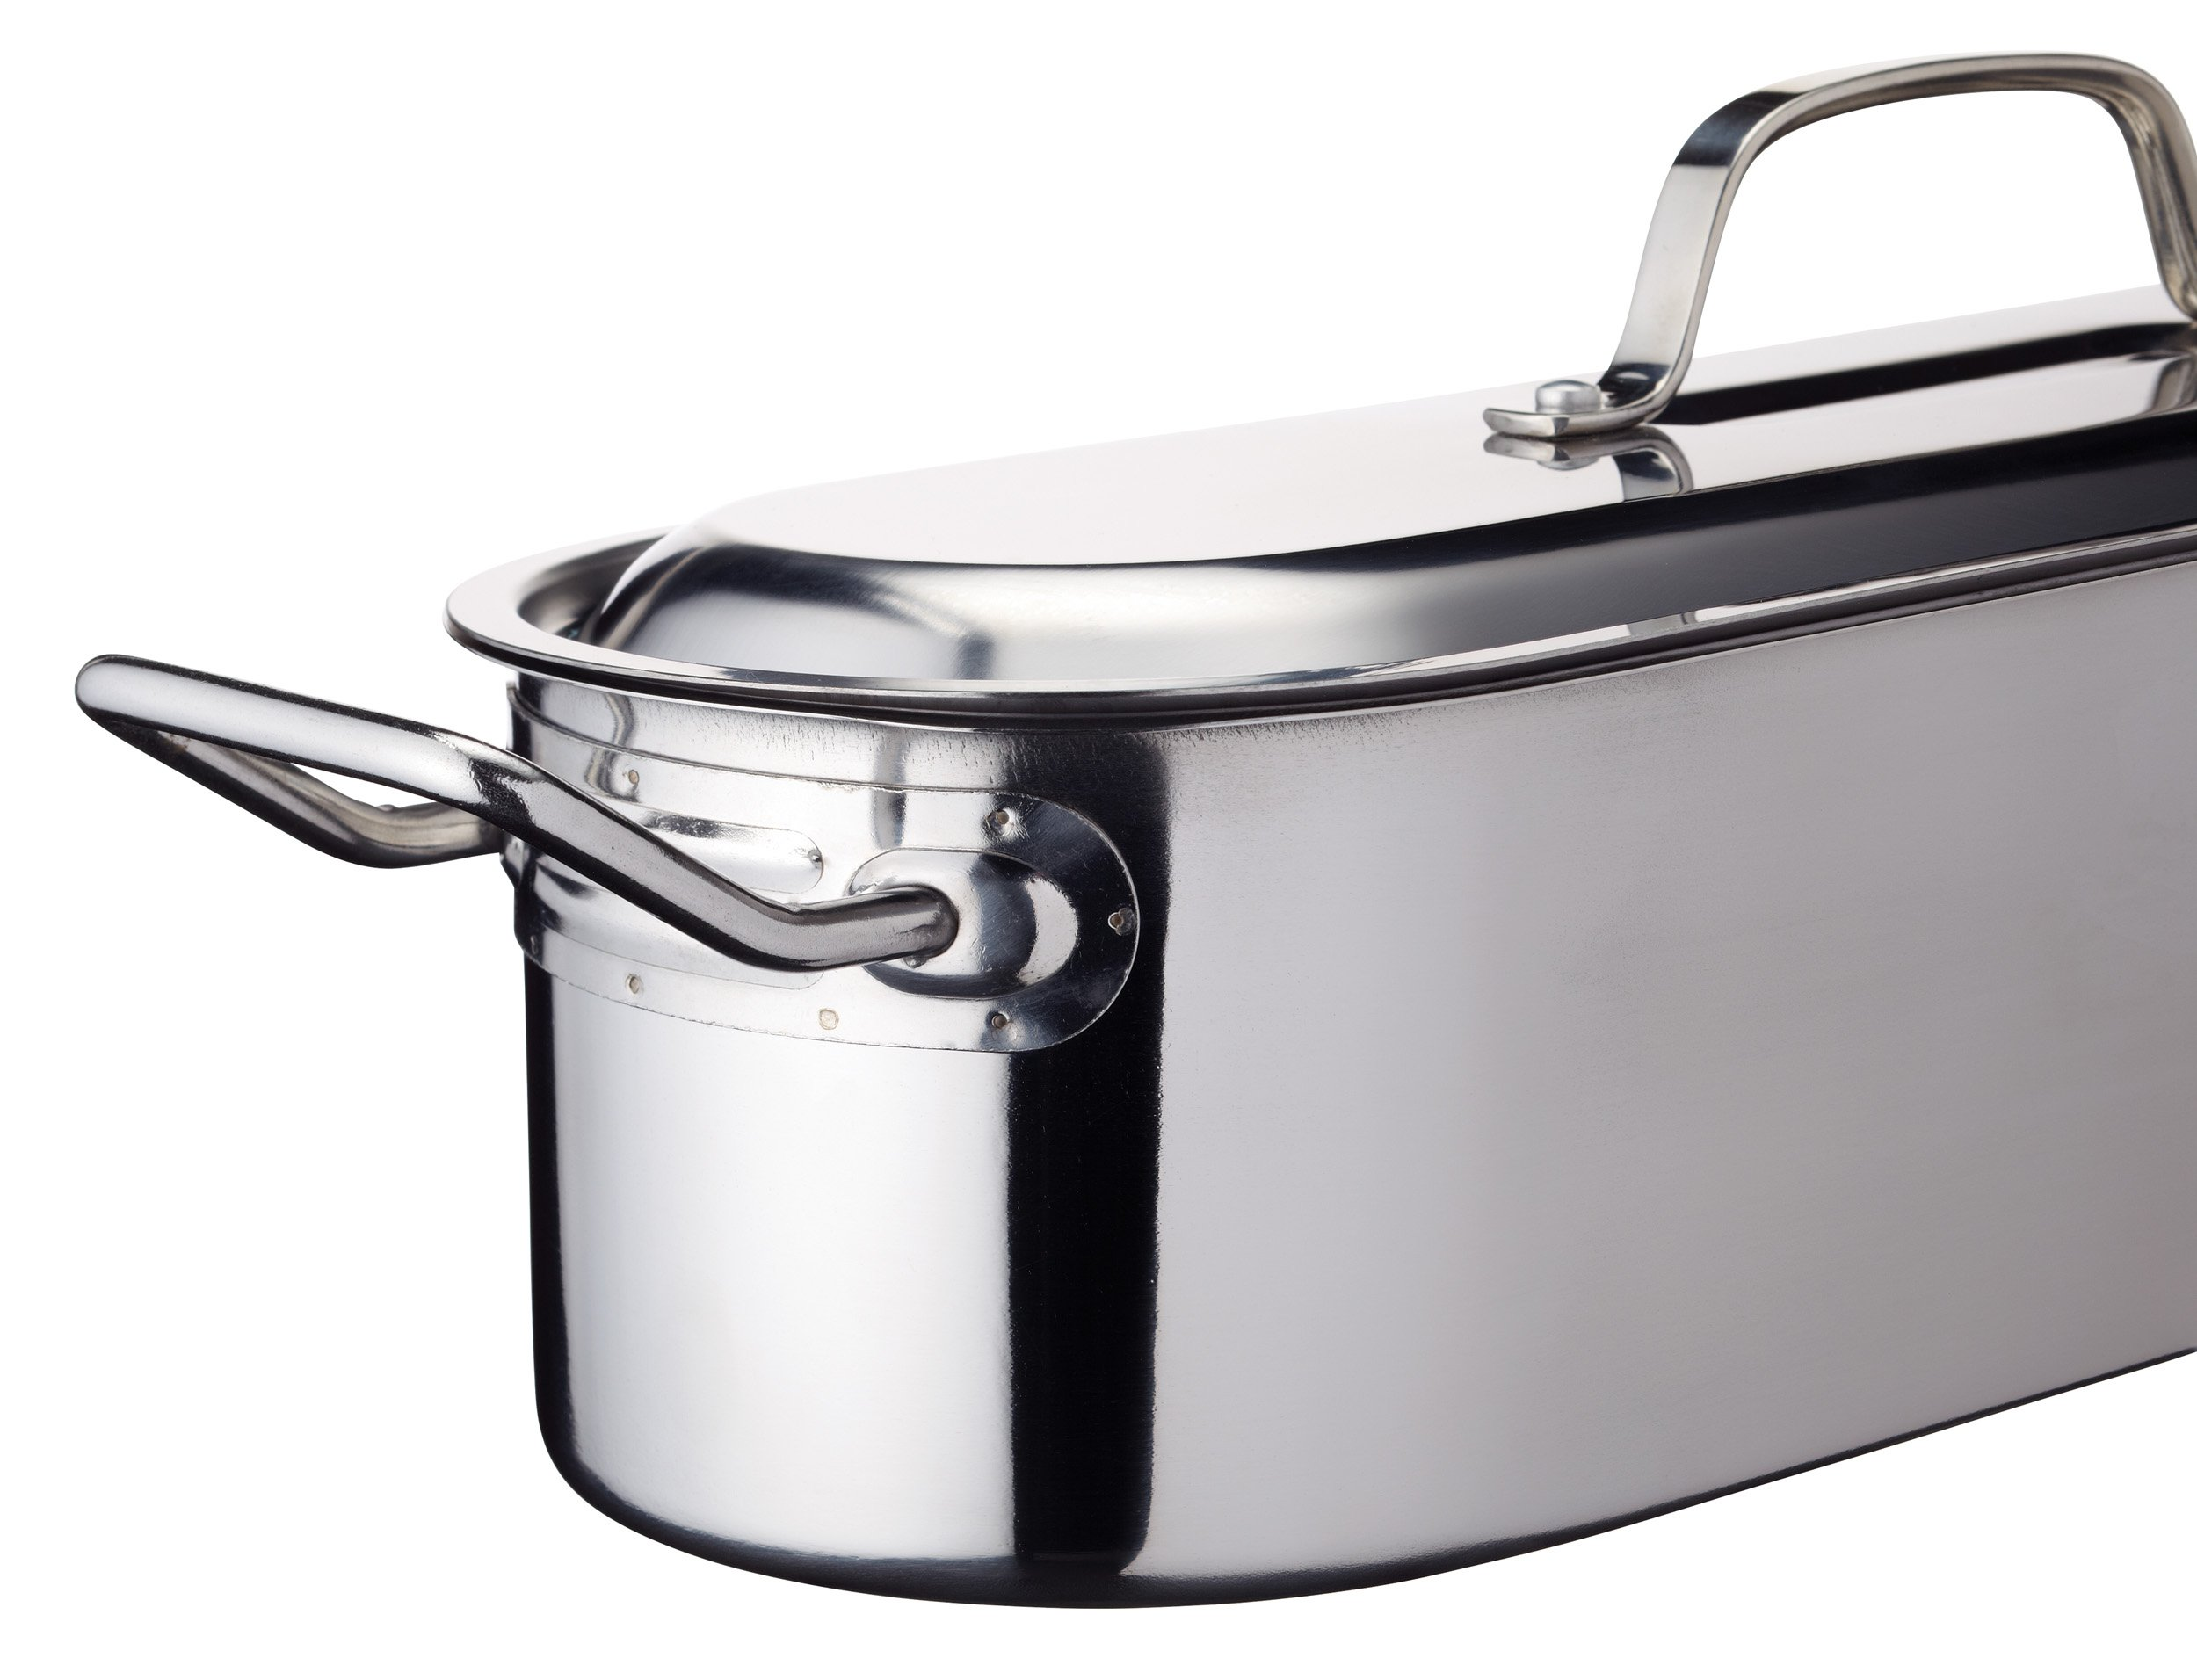 Kitchencraft Induction-safe Stainless Steel Fish Kettle, 45.5 x 15.5 x 10cm by Kitchen Craft (Image #2)